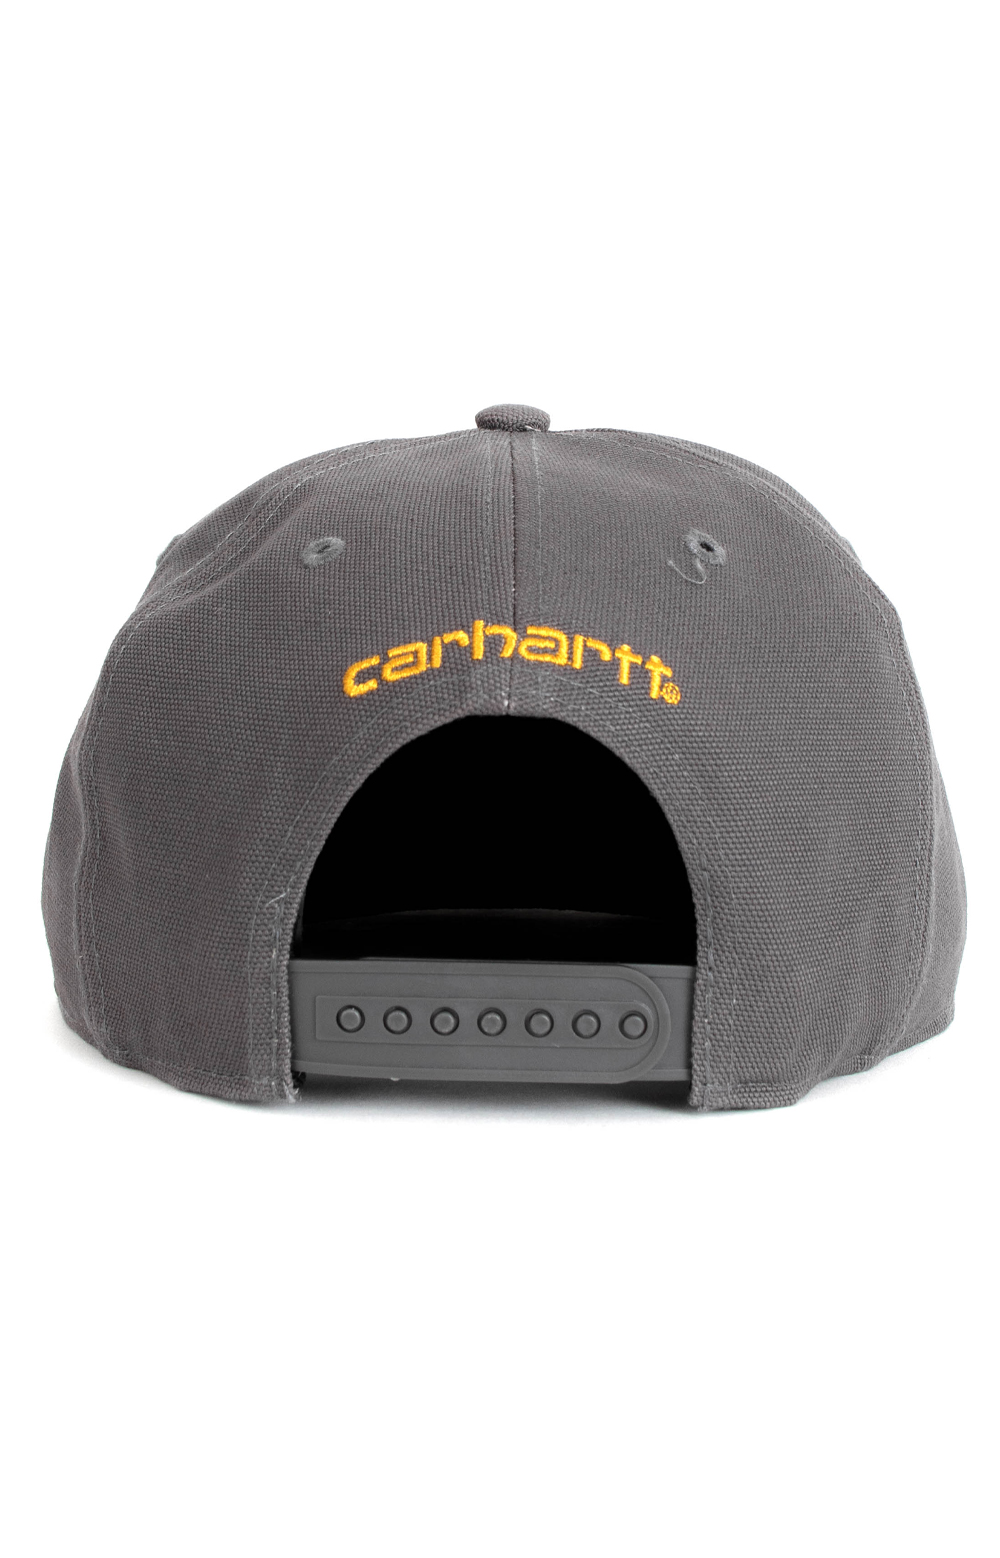 (101604) Ashland Snap-Back Hat - Gravel 3